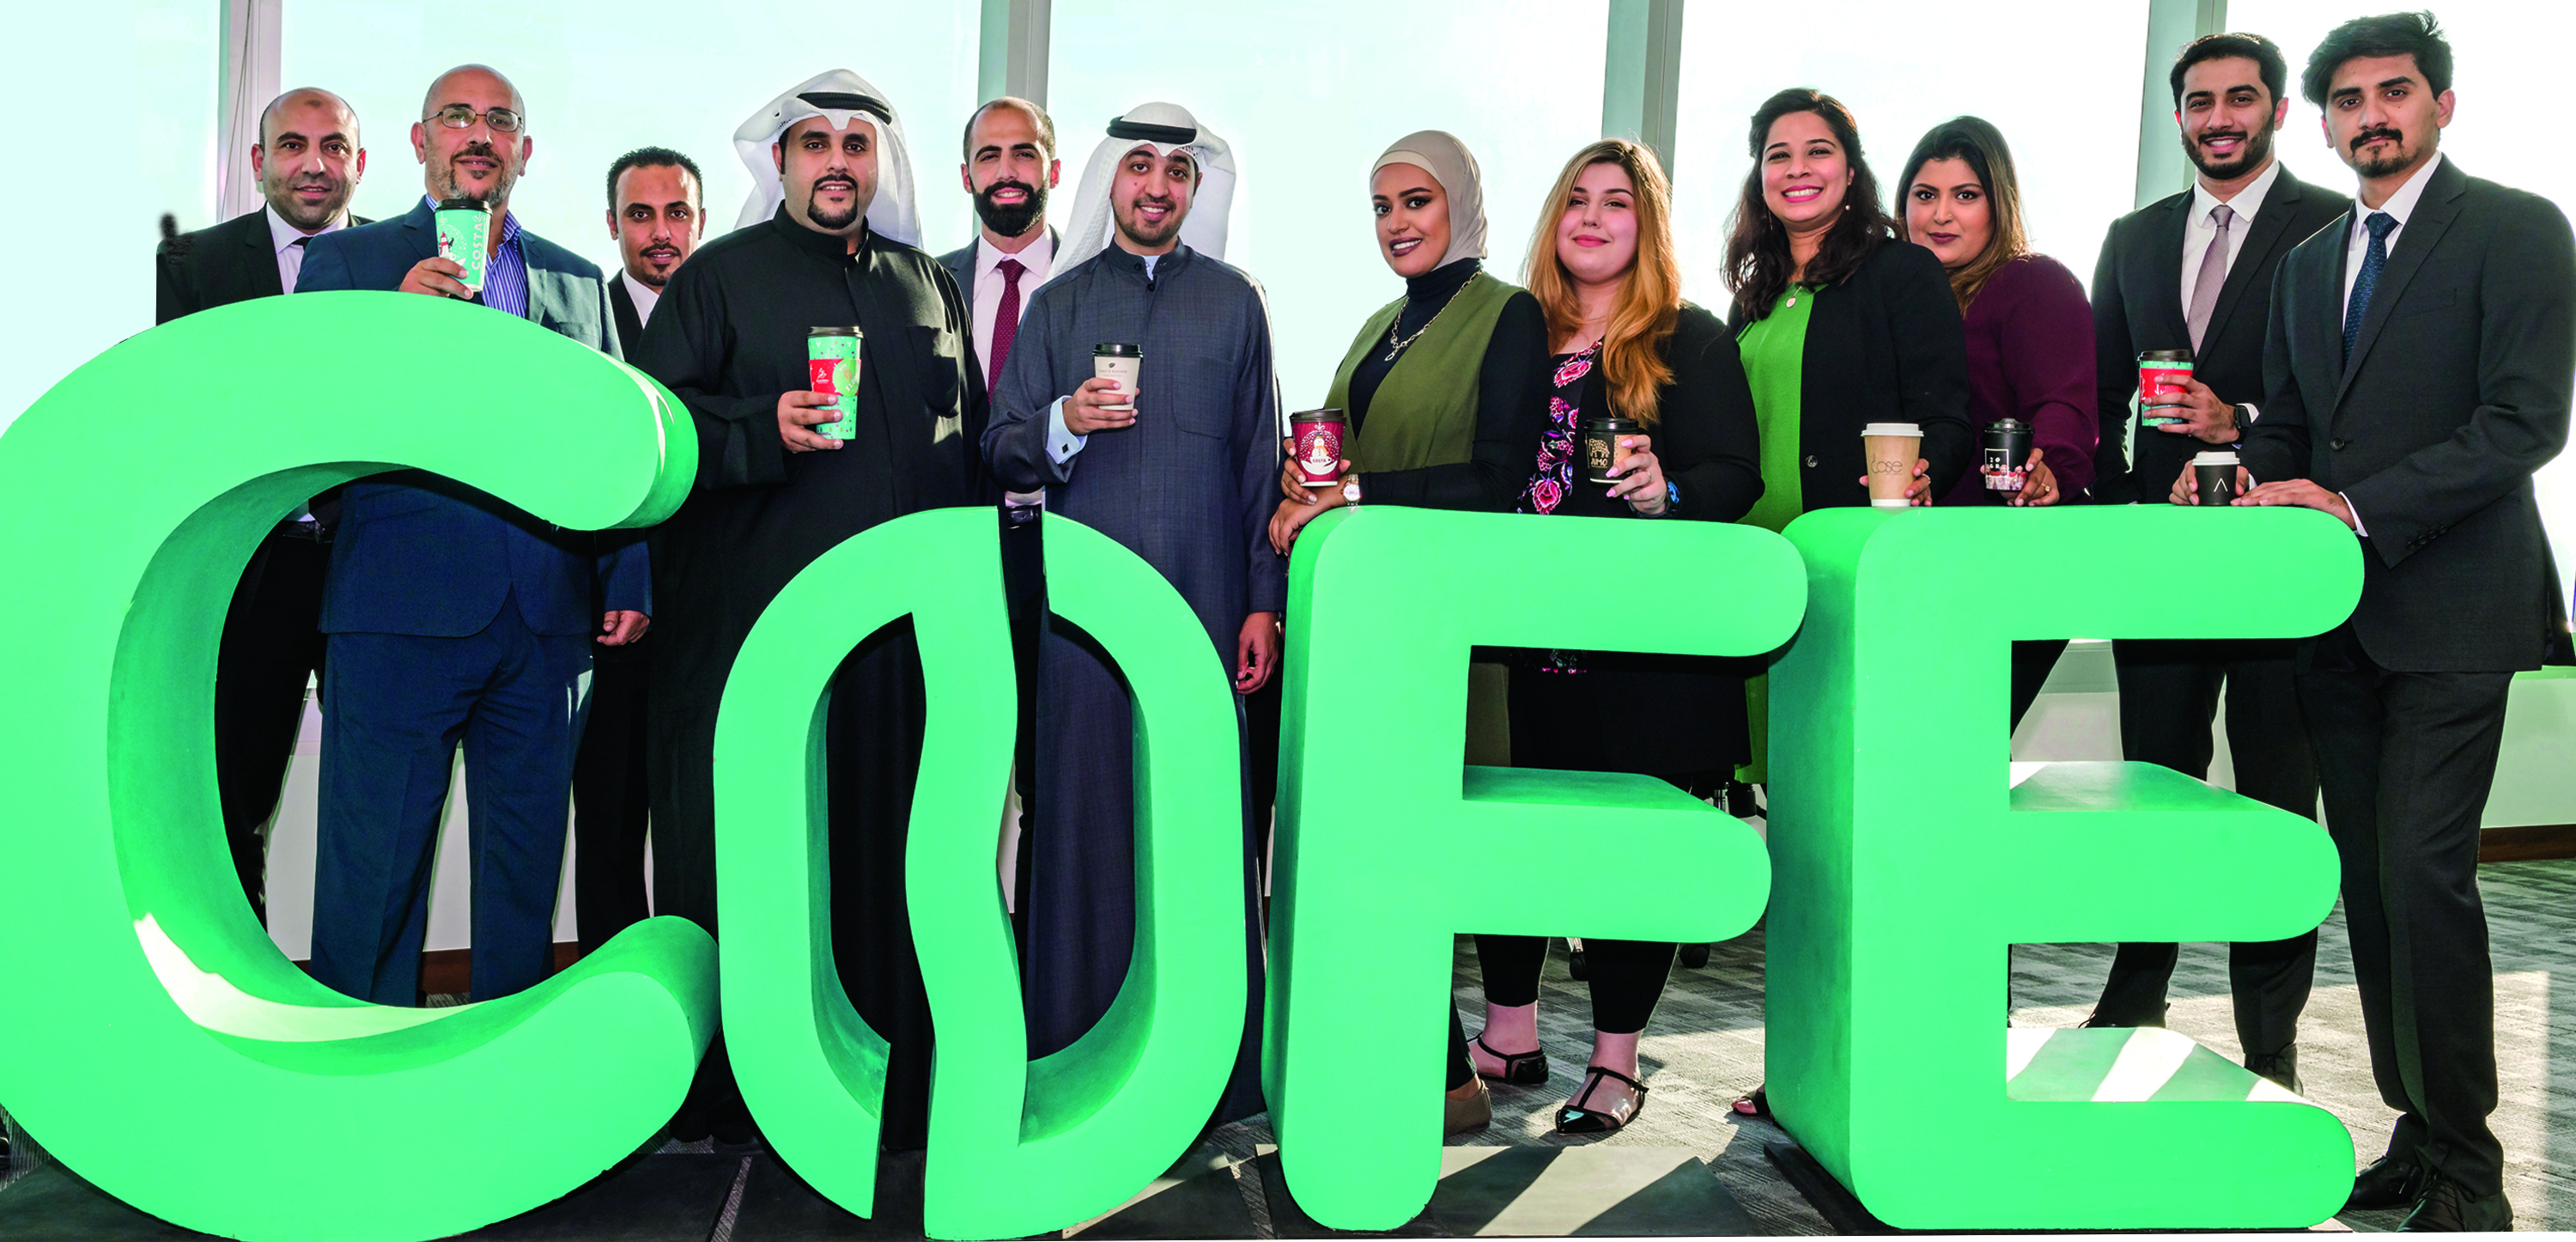 COFE APP secures USD 3.2 Million in 'Pre Series A' funding